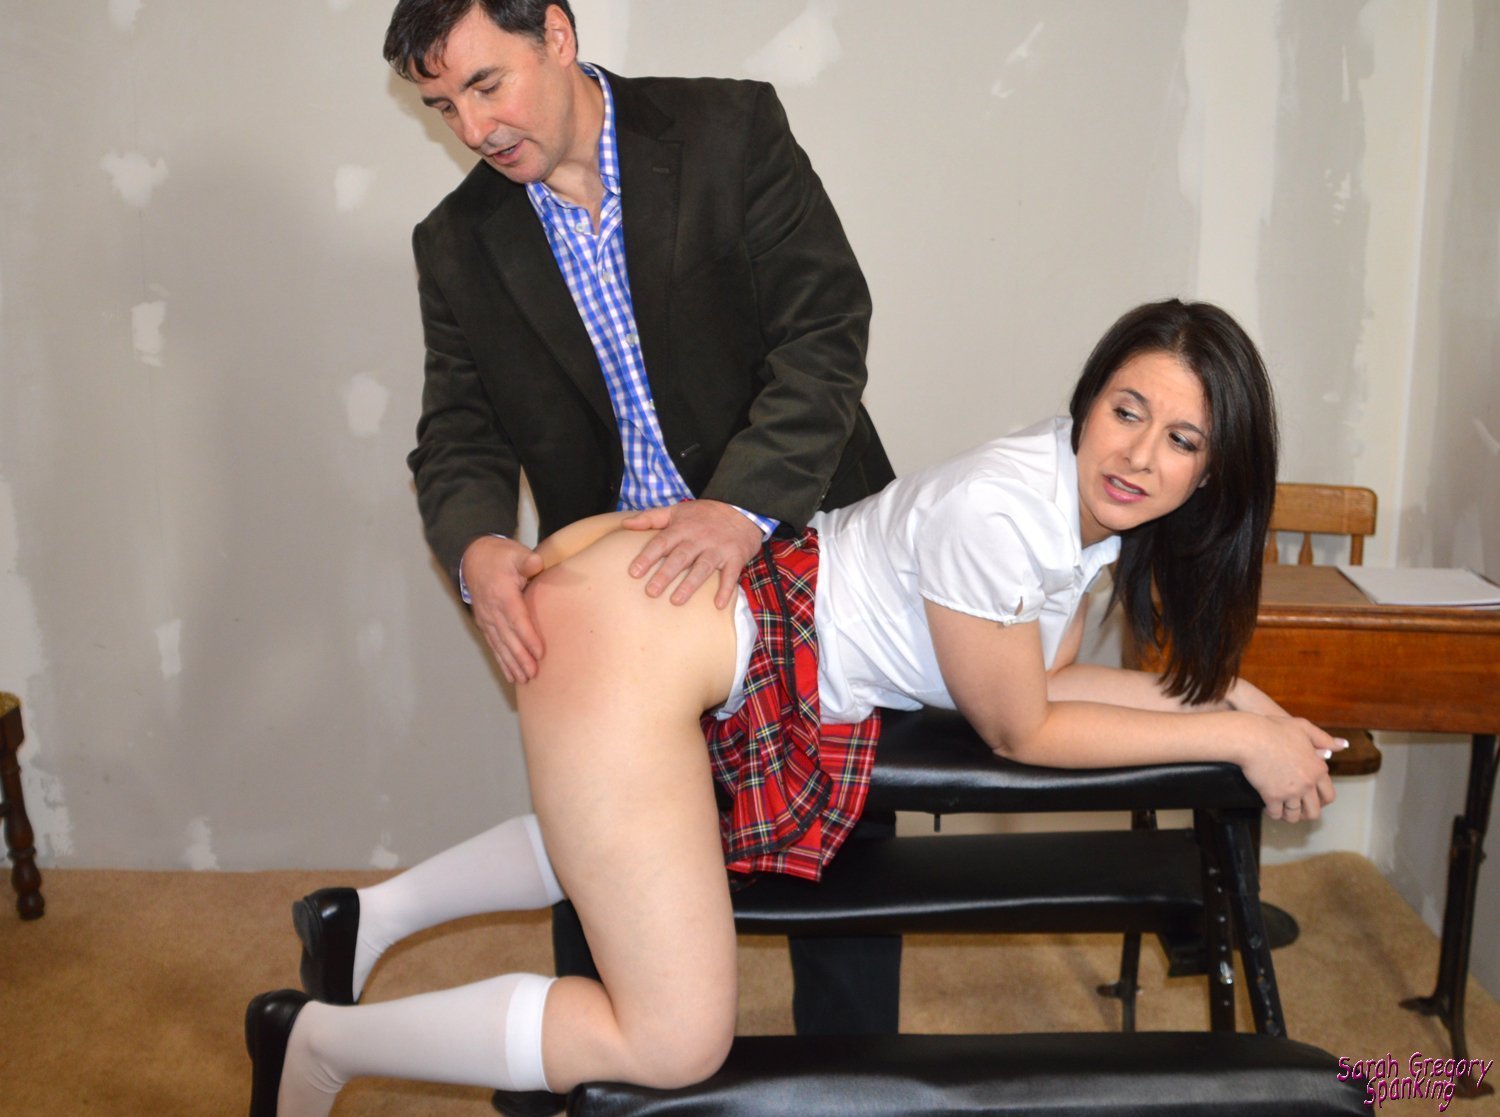 Spanked college girls free images